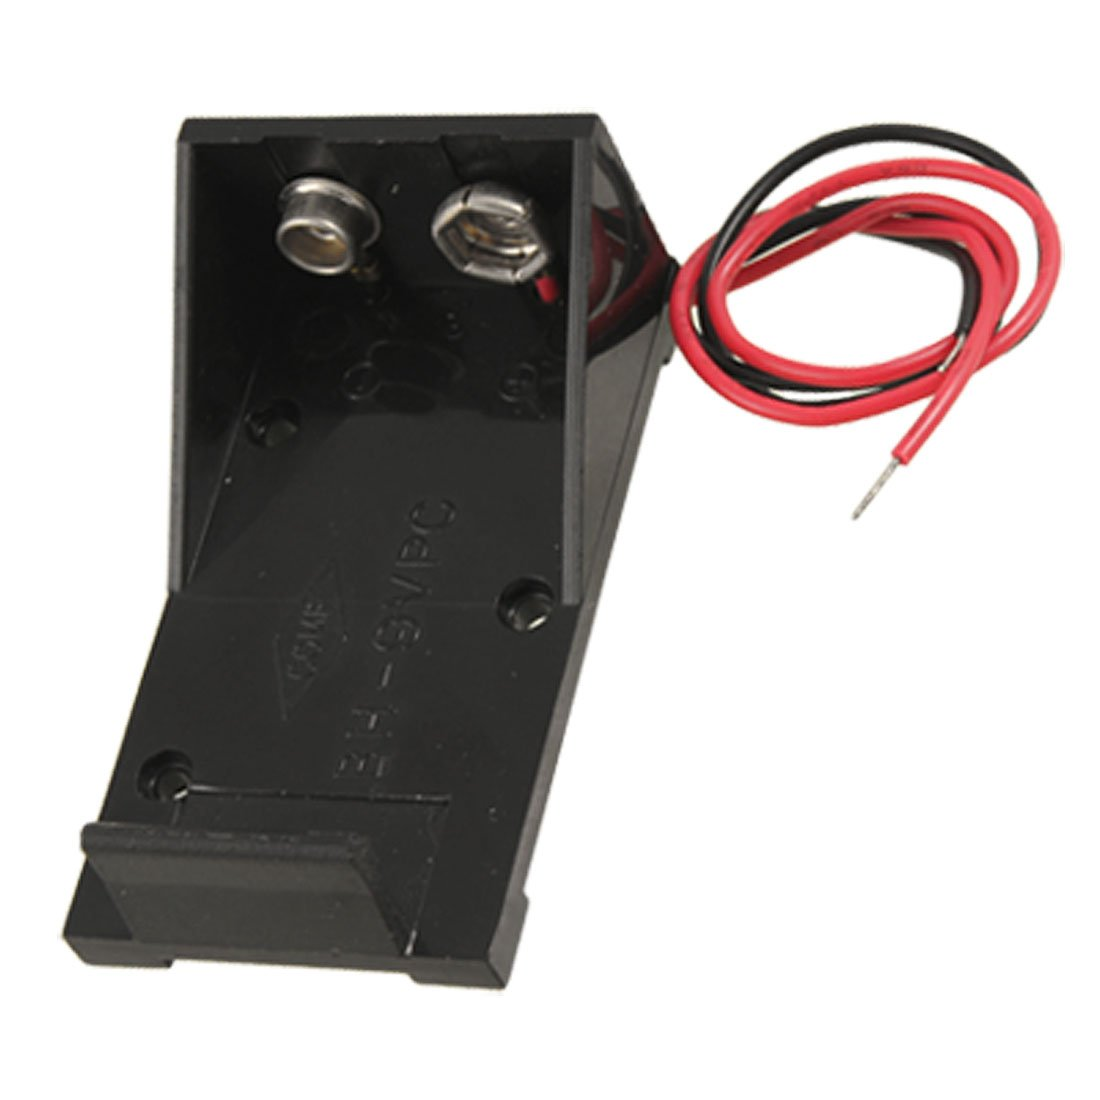 WITH HARD PLASTIC COVER CONNECTOR LEADS 10 x PP3  BATTERY CLIPS